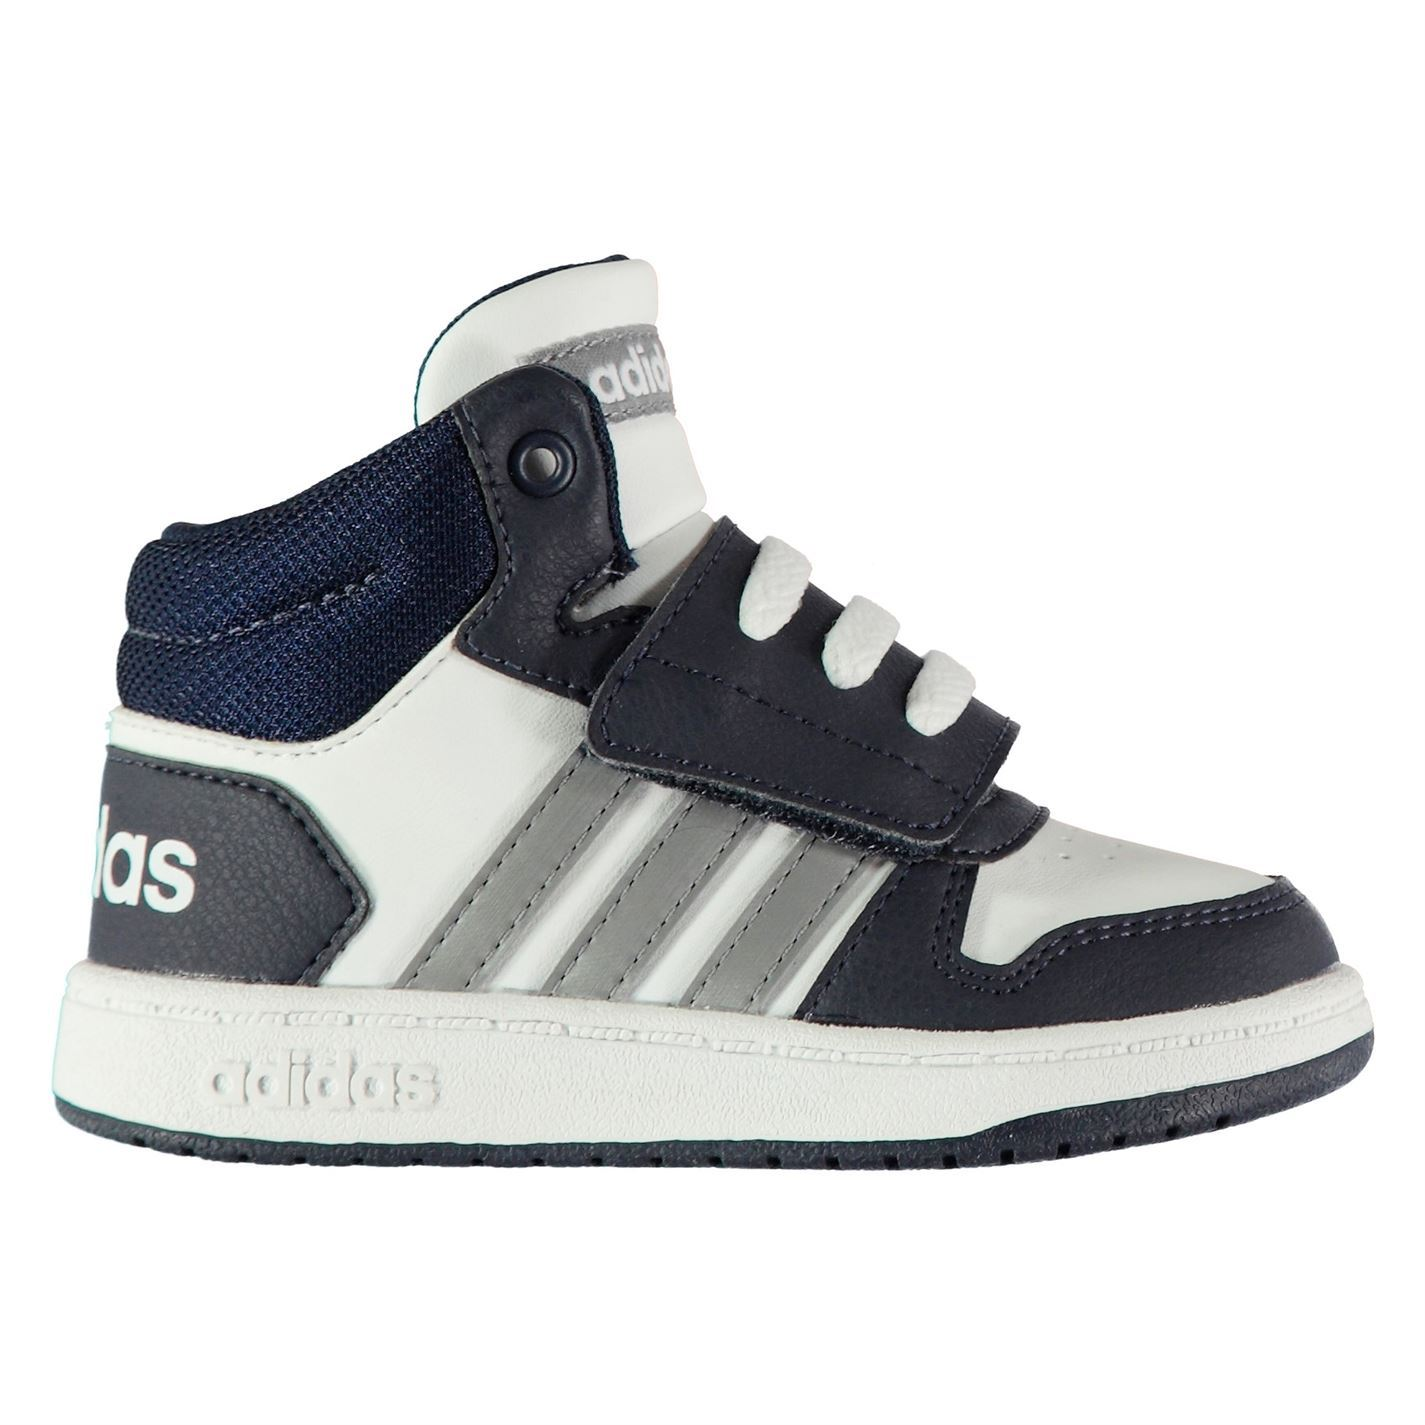 4622c383e74b The adidas Hoops Trainers feature a retro inspired mid cut ankle offering  added support and comfort